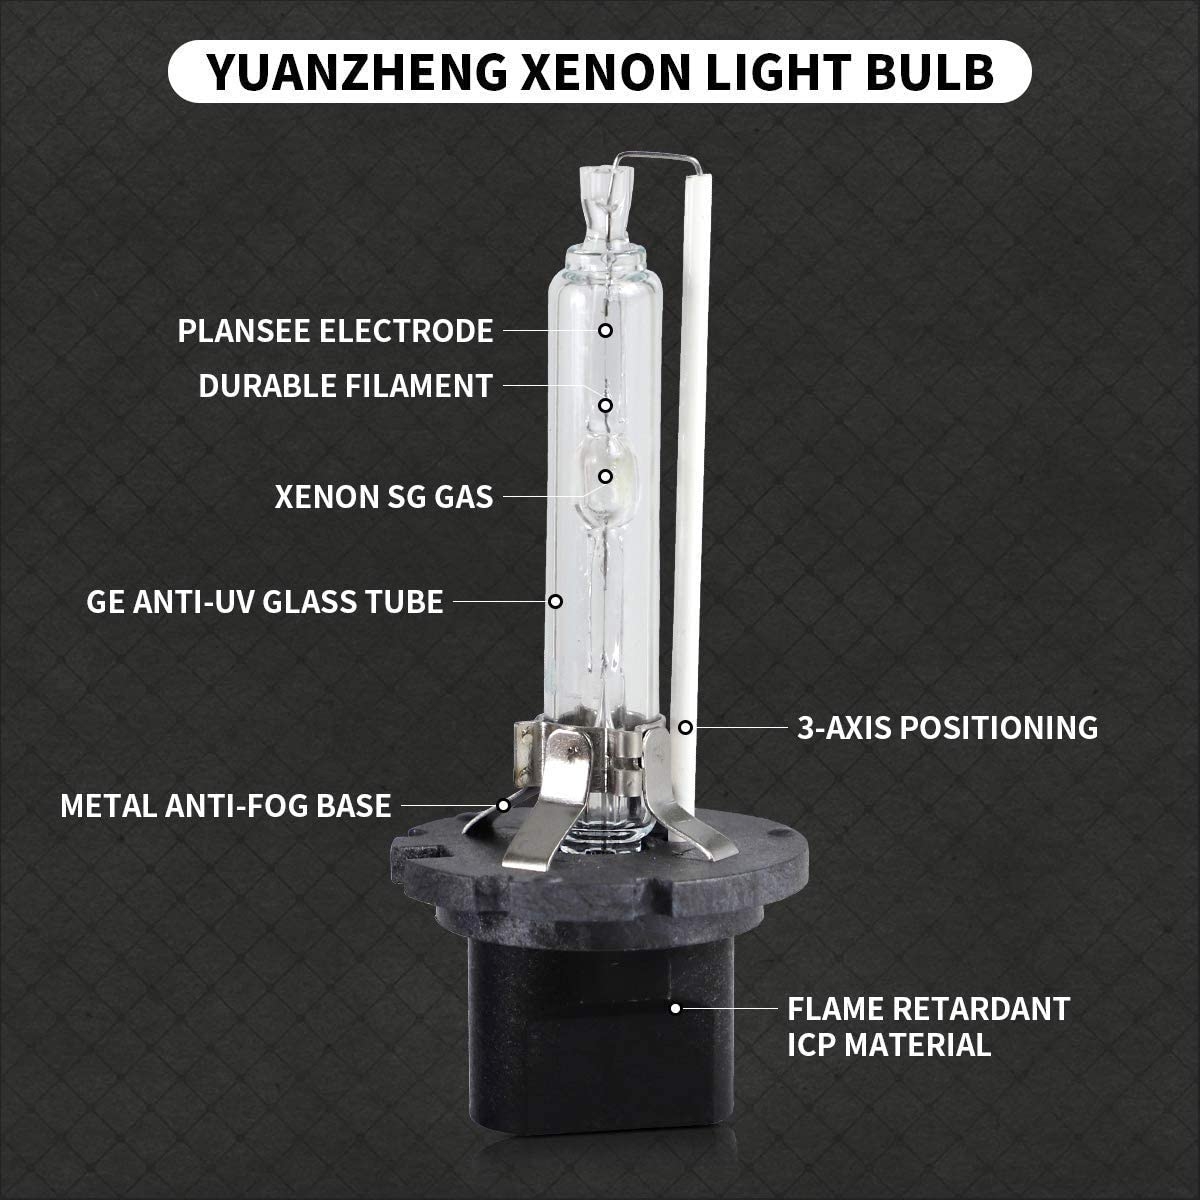 12V 35W 6000K 3200Lm VLAND D2H Xenon Bulb Conversion Kit with Ballasts for Projector Headlights Compatible with D2S D2R D4S 2 Set